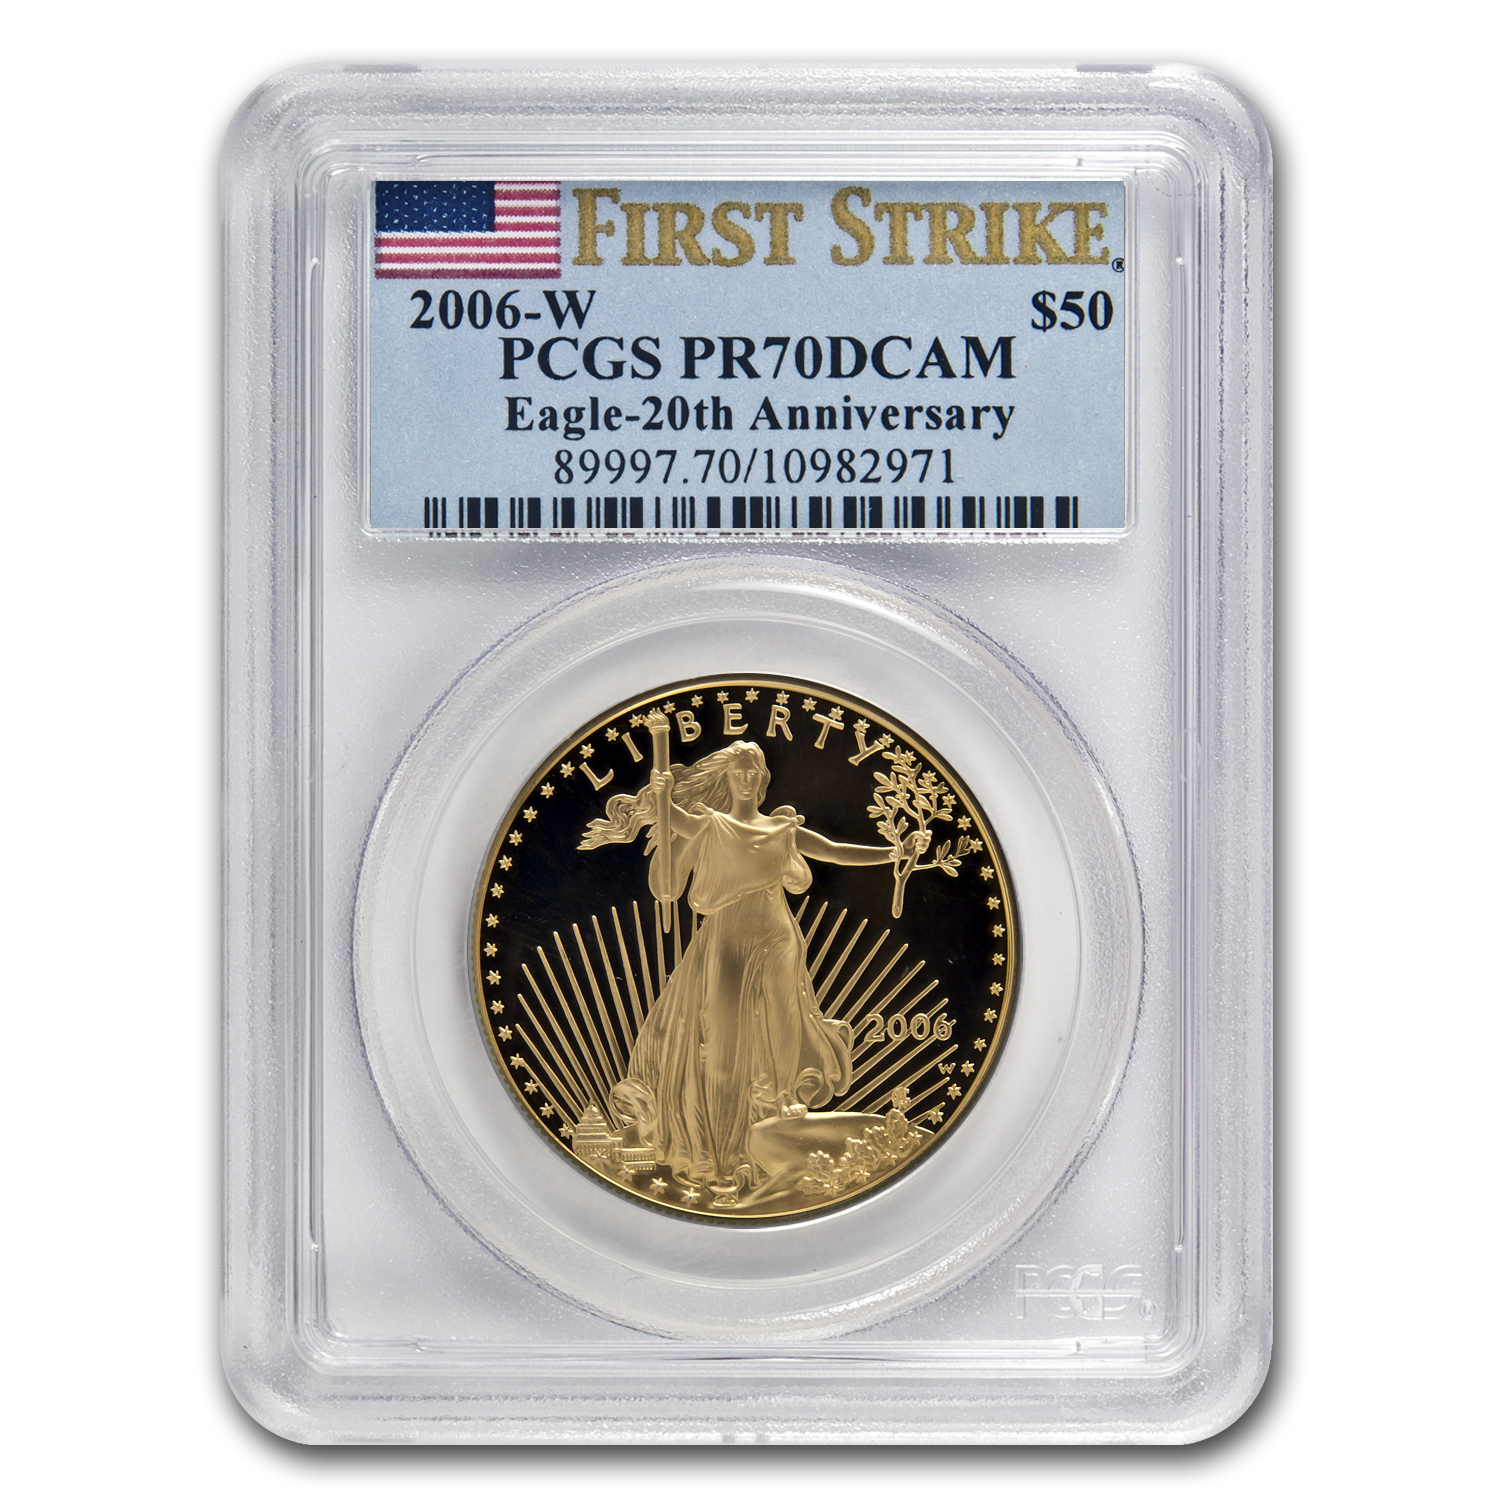 2006-W 1 oz Gold American Eagle PR-70 PCGS (FS) Registry Set